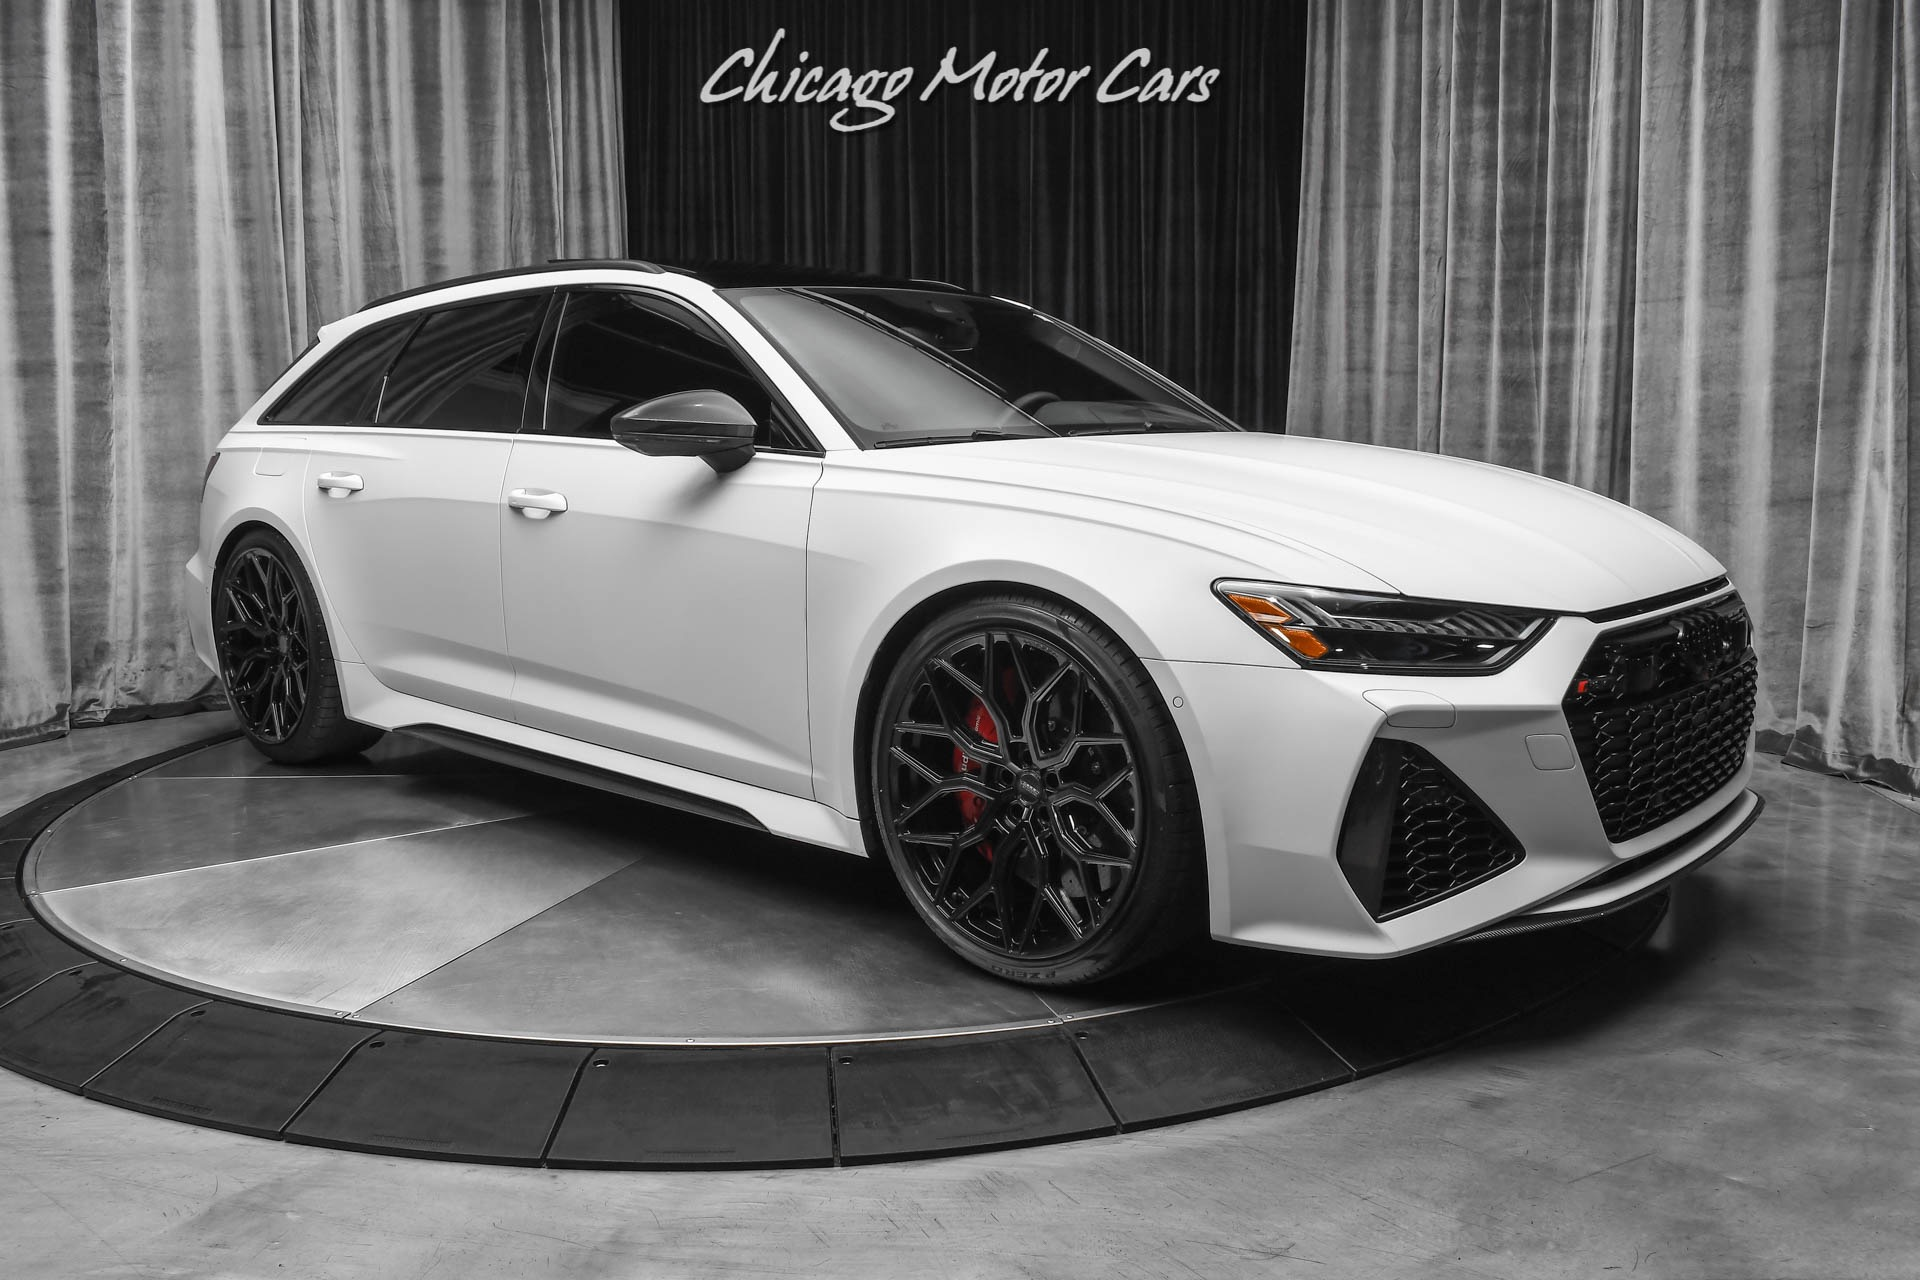 Used 2021 Audi Rs6 4 0t Quattro Avant Hatchback Loaded W Options Dme Stage 2 Tune Full Ppf For Sale Special Pricing Chicago Motor Cars Stock 17727